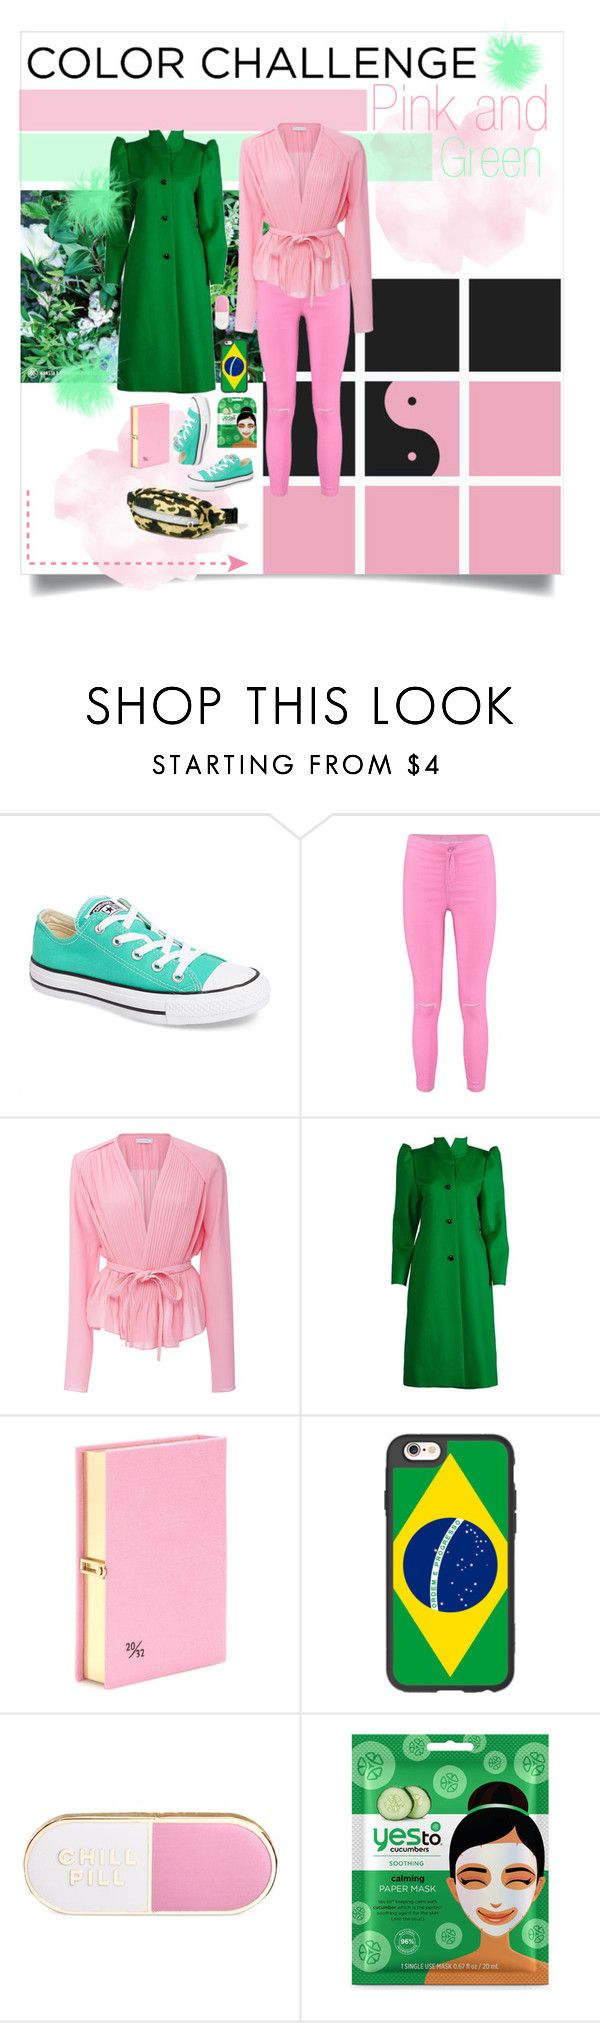 """""""Colour challenge"""" by hazznboobear ❤ liked on Polyvore featuring Converse, Boohoo, Carven, Olympia Le-Tan, Casetify, ban.do, Yes to Cucumbers, A BATHING APE, colorchallenge and greenandblush"""